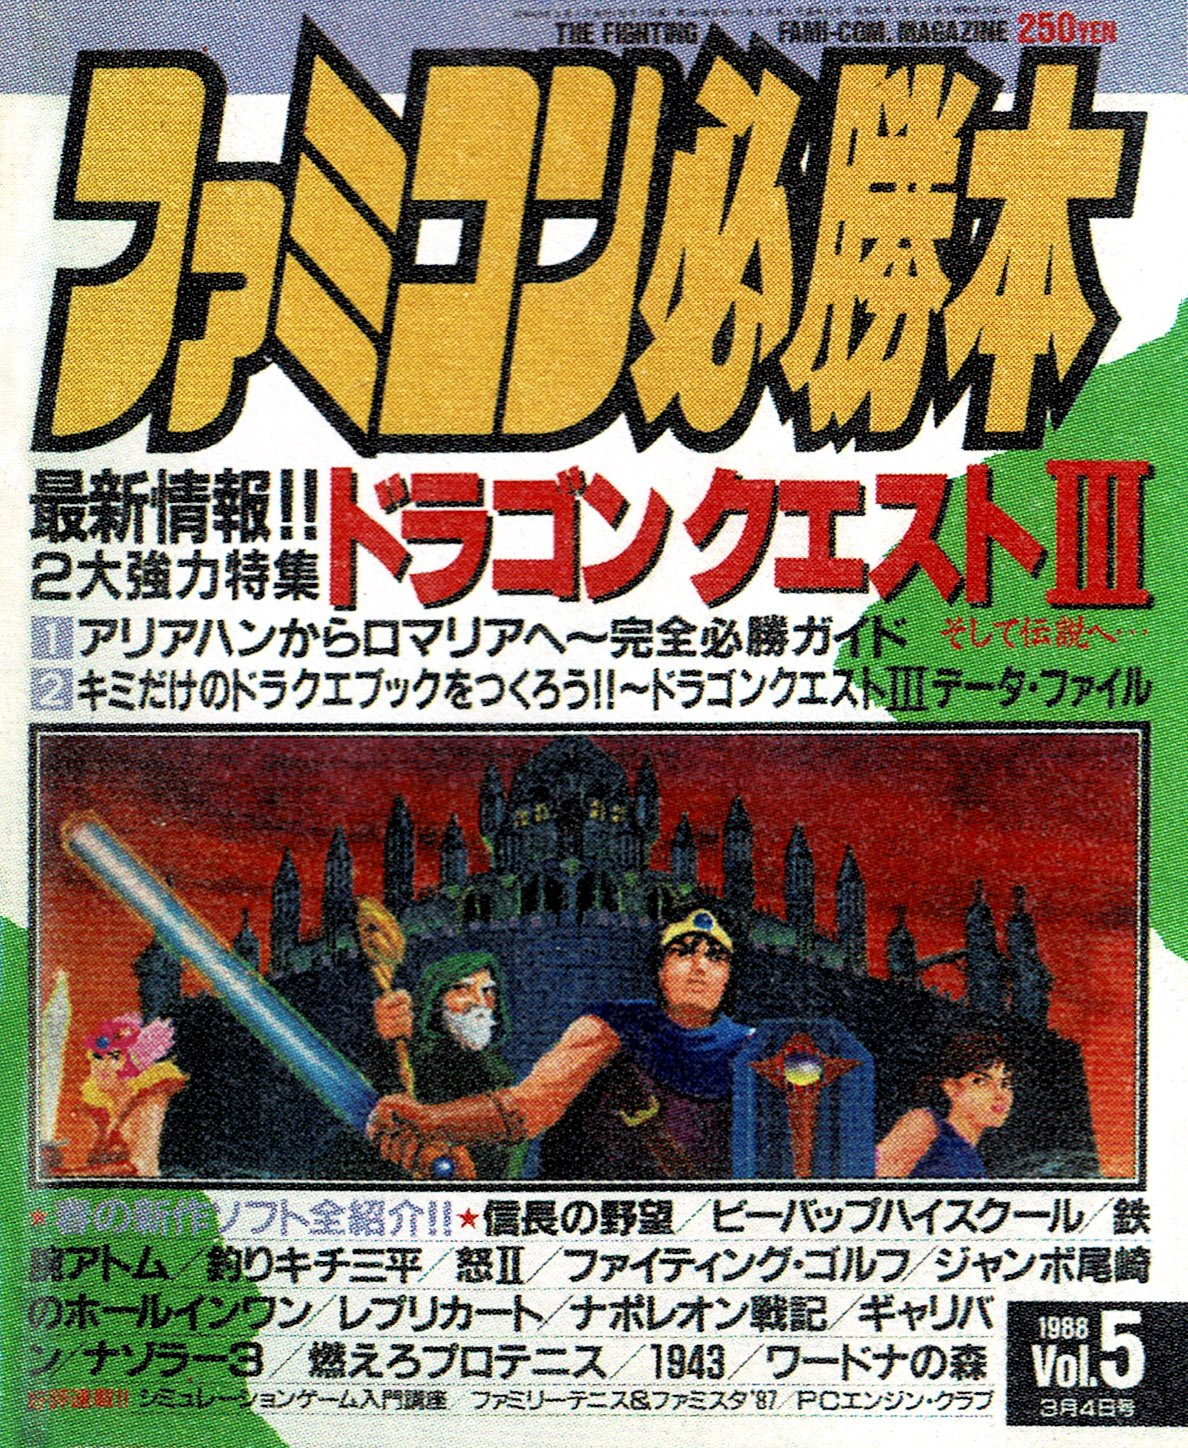 Famicom Hisshoubon Issue 042 (March 4, 1988)